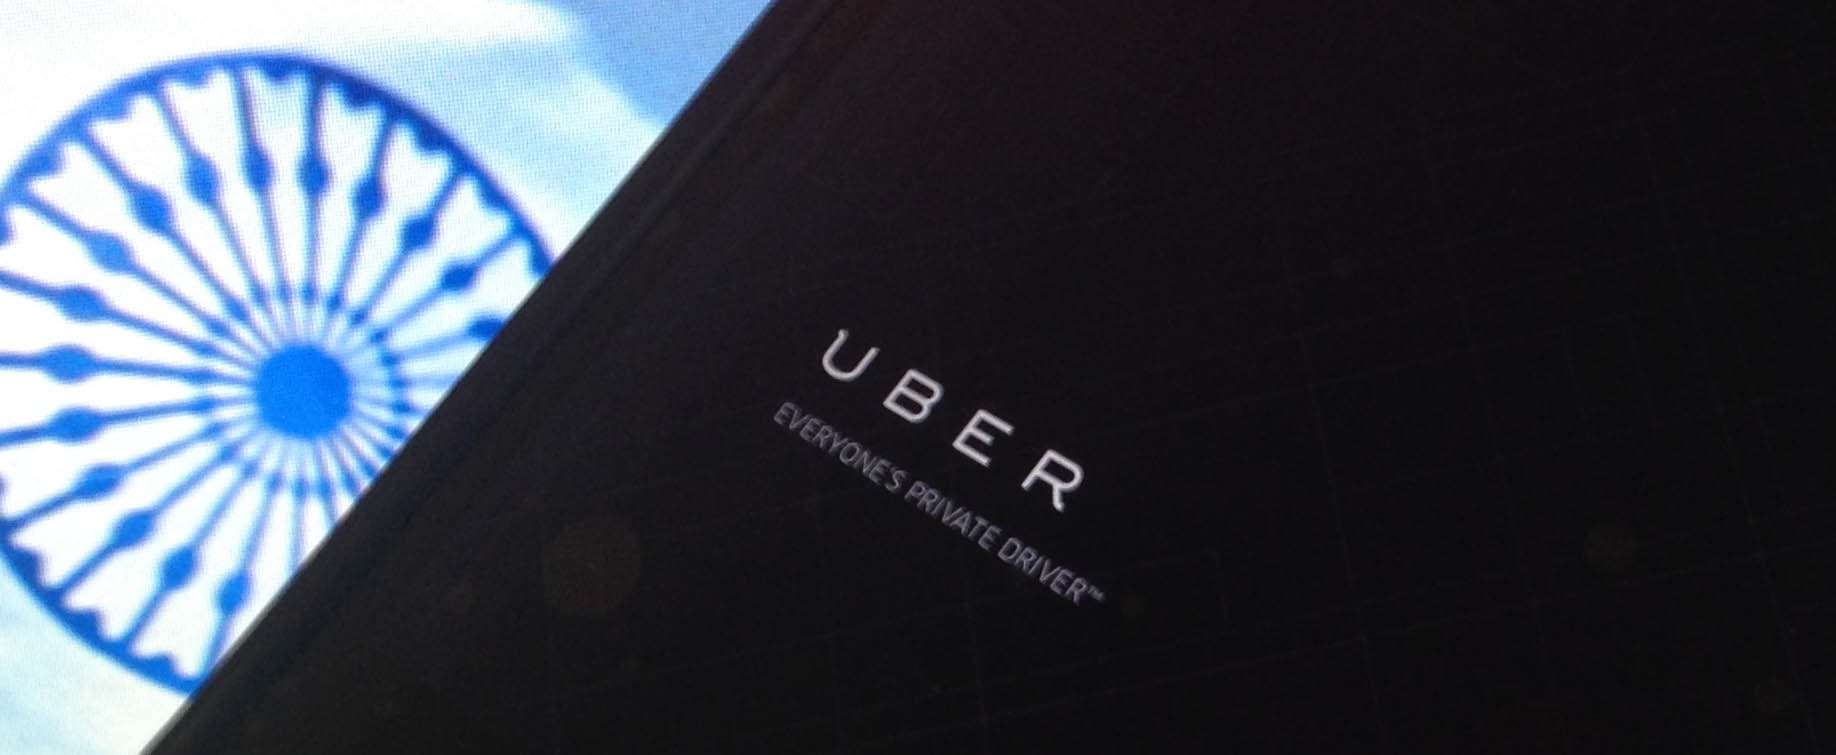 Unrecognized Online Taxi Services Banned in New Delhi Following Uber Rape Claim